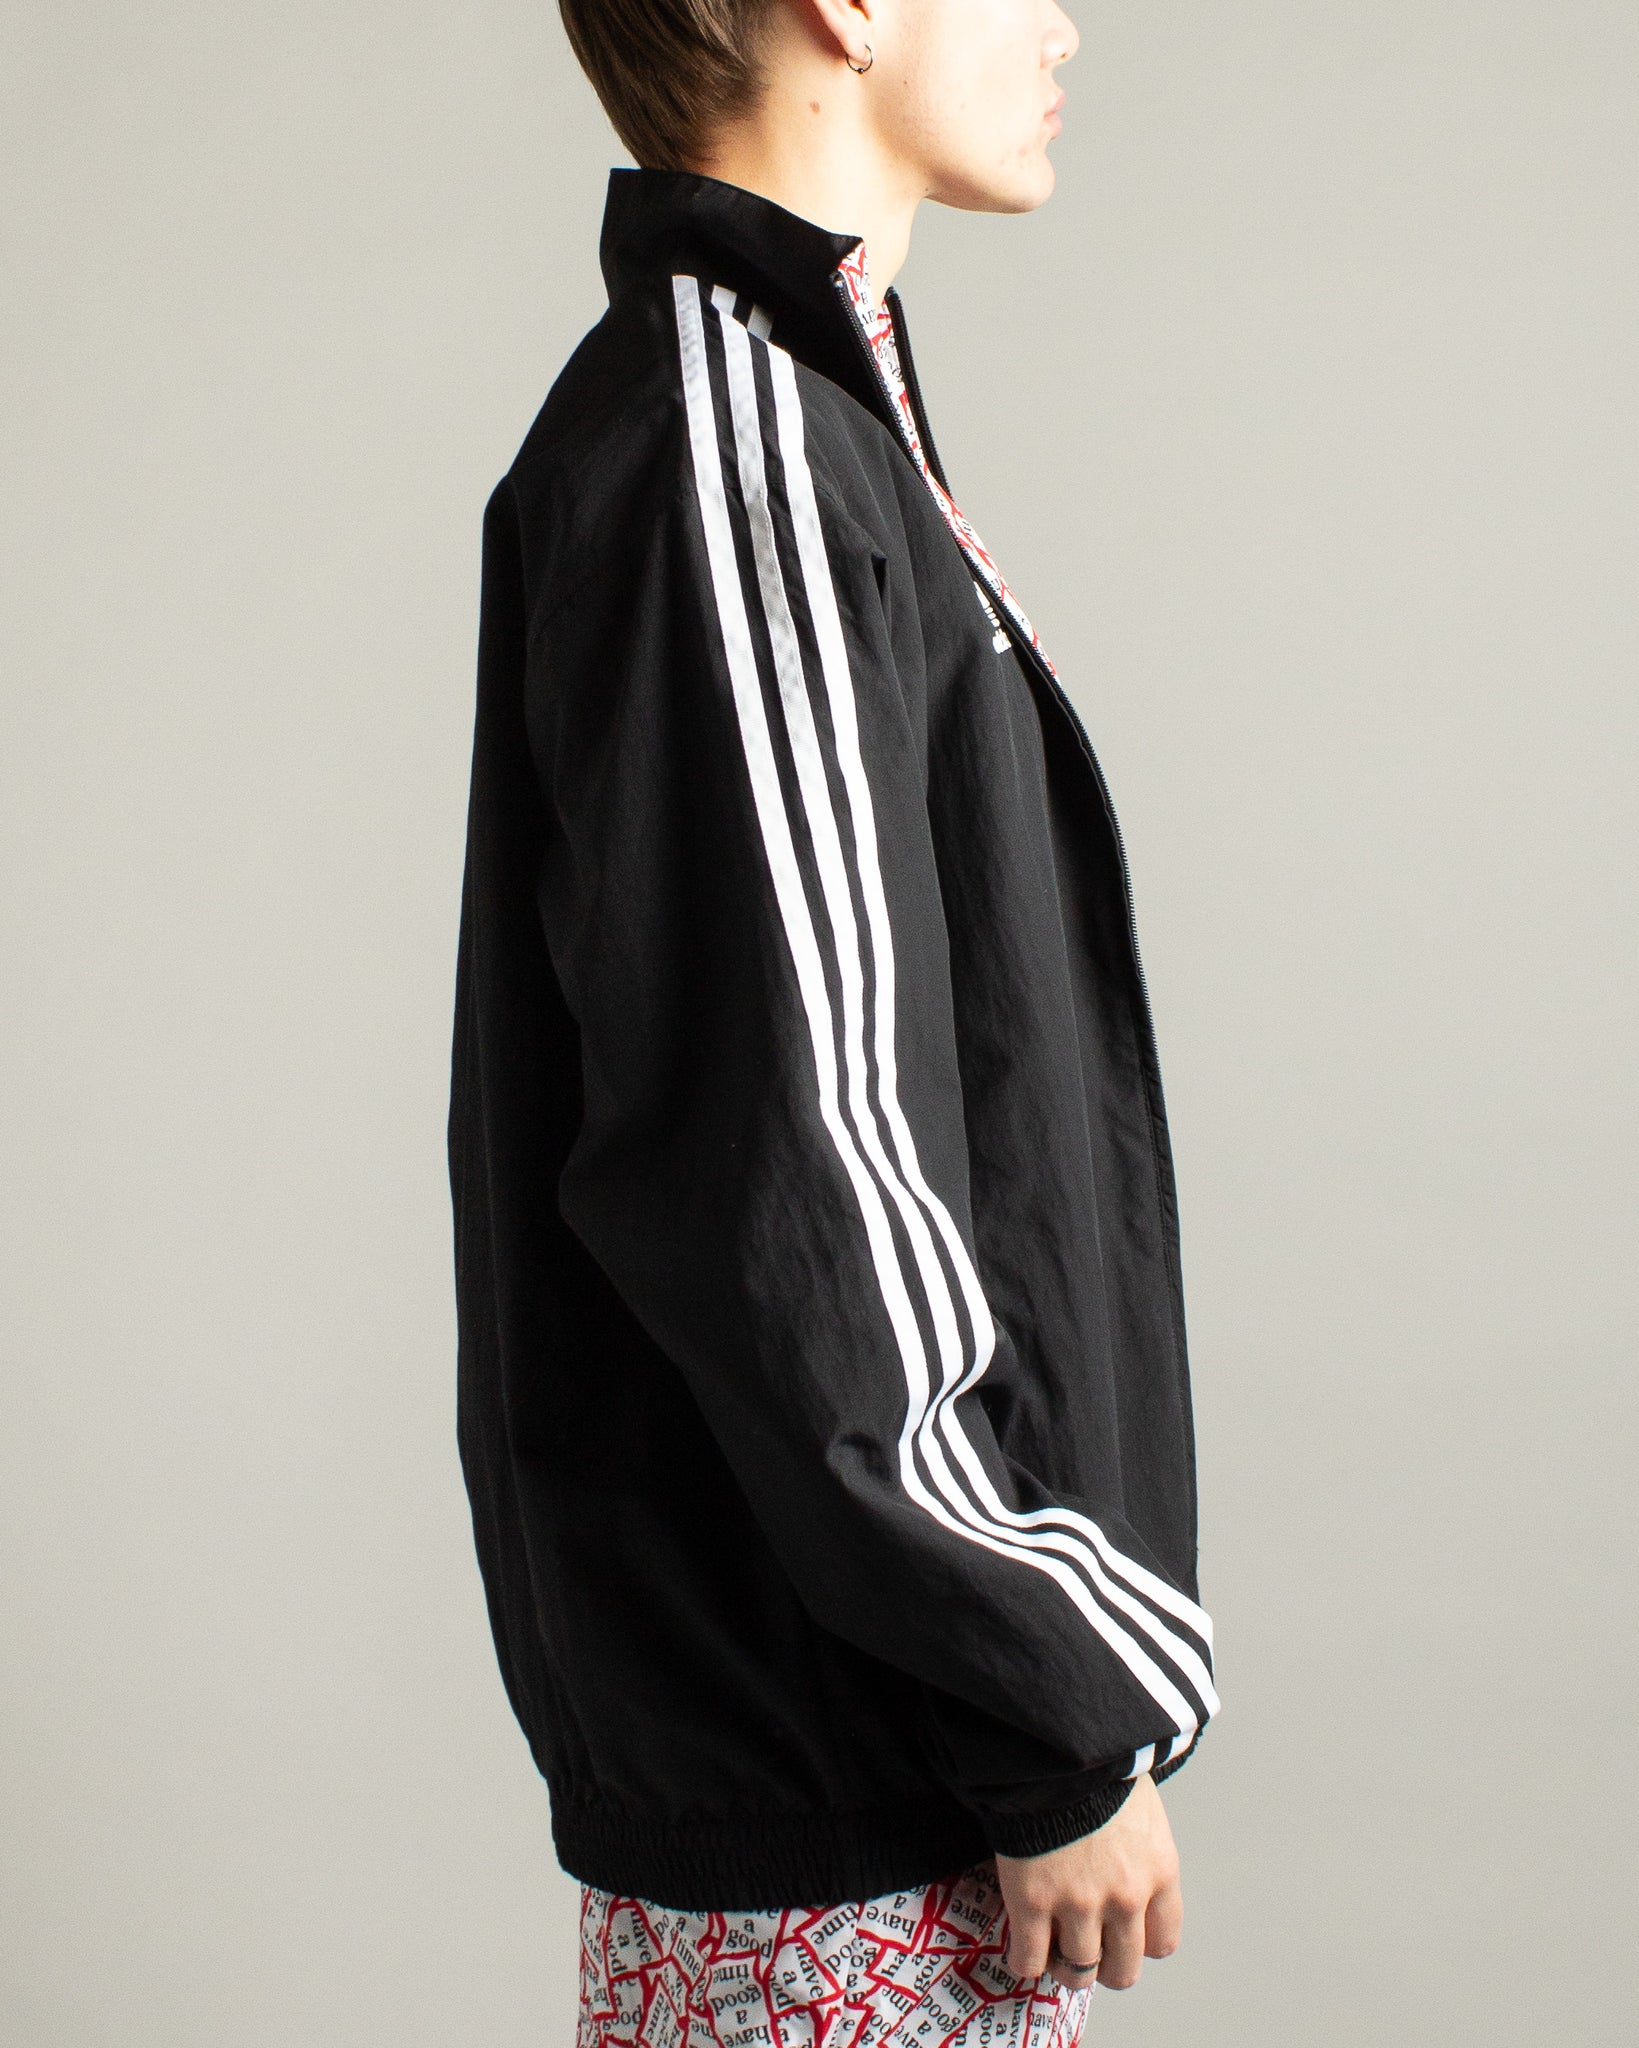 Have a Good Time Reversible Track Top Black